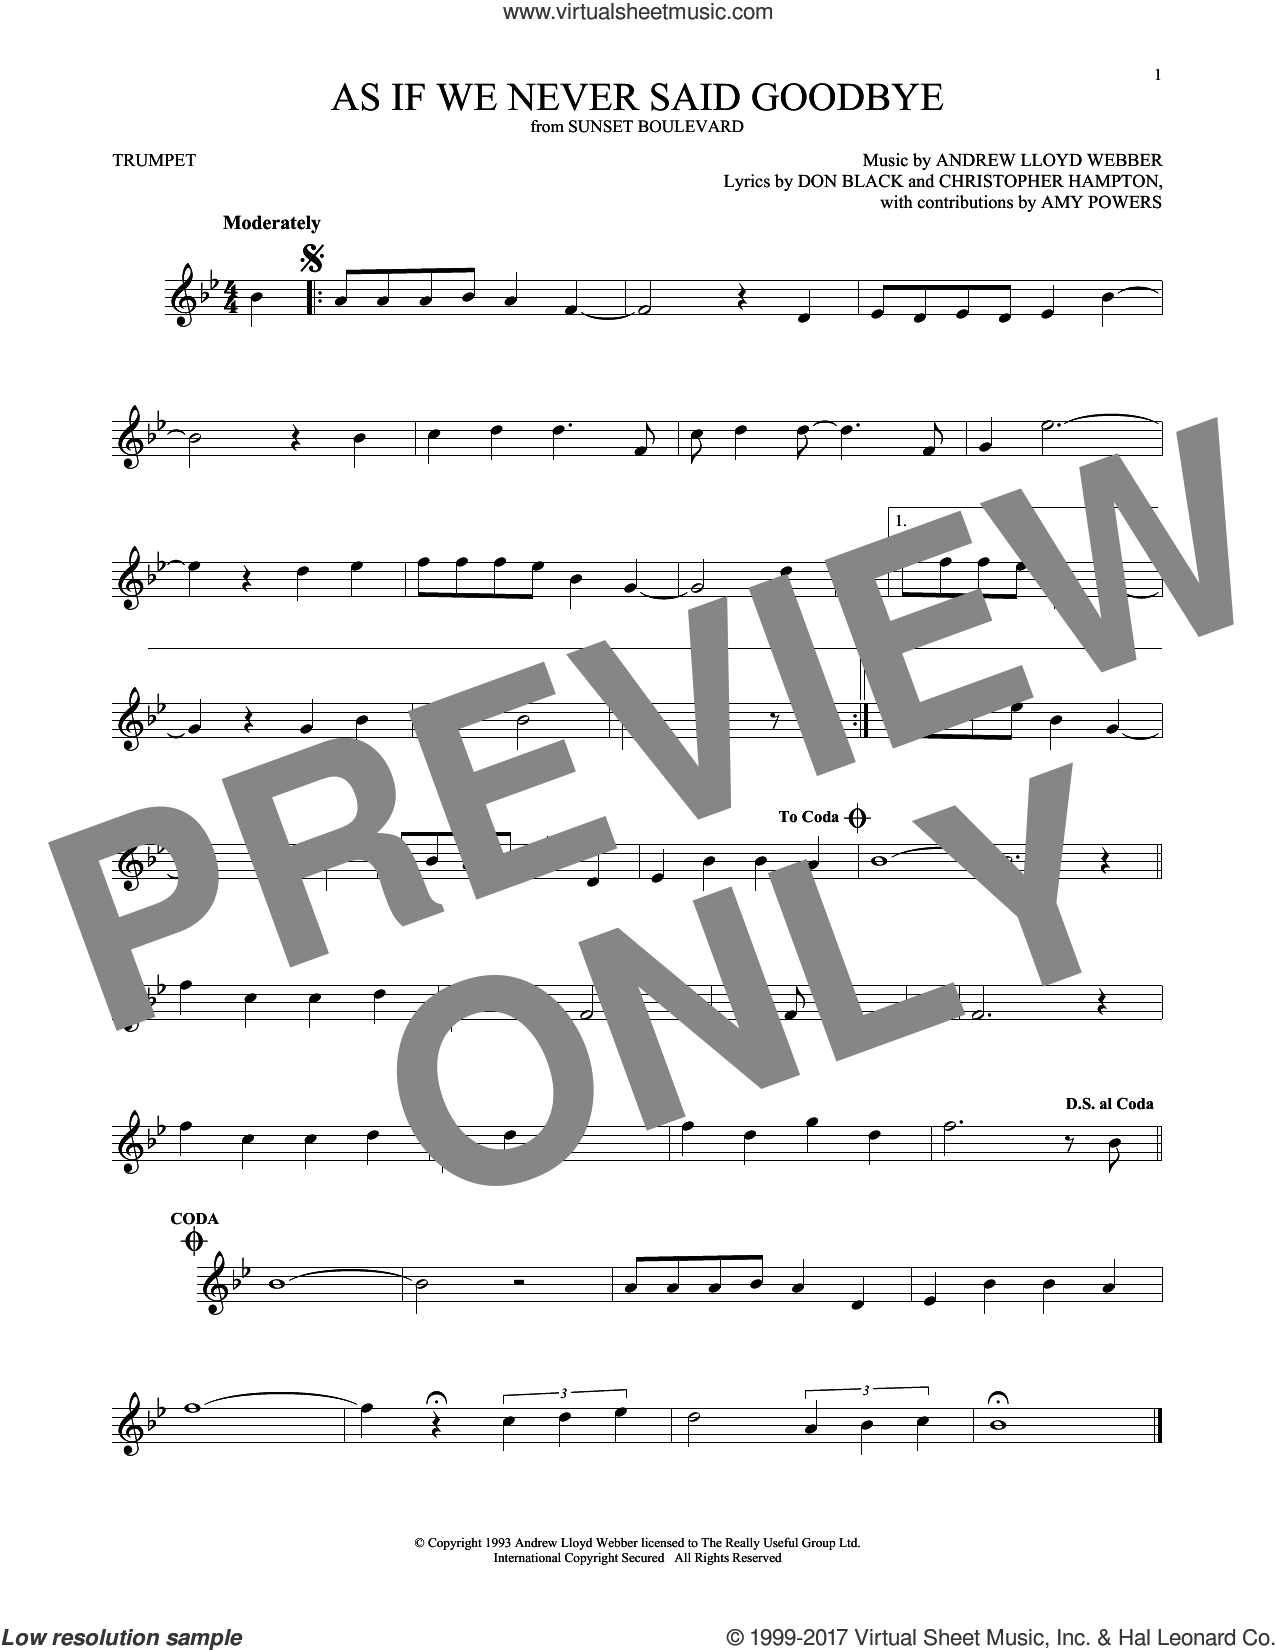 As If We Never Said Goodbye sheet music for trumpet solo by Andrew Lloyd Webber, Christopher Hampton and Don Black, intermediate skill level